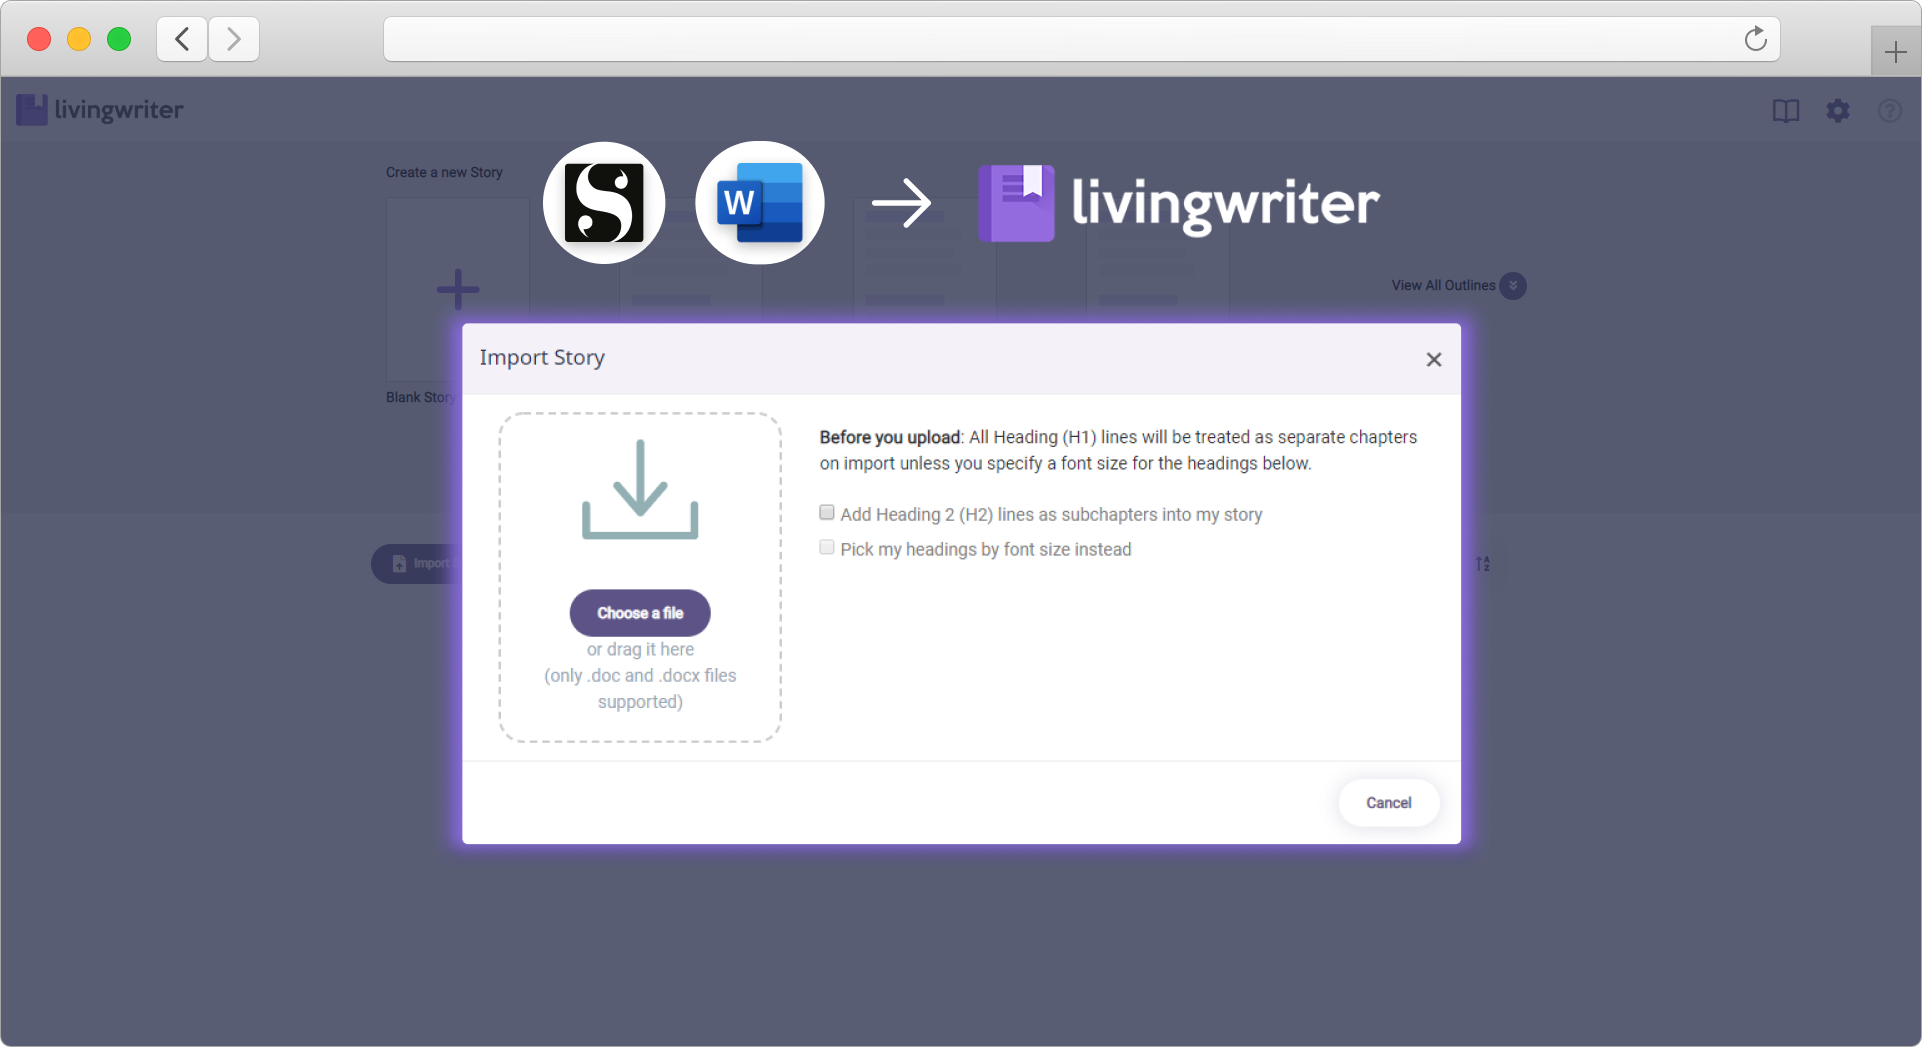 livingwriter-novel-writing-app-import